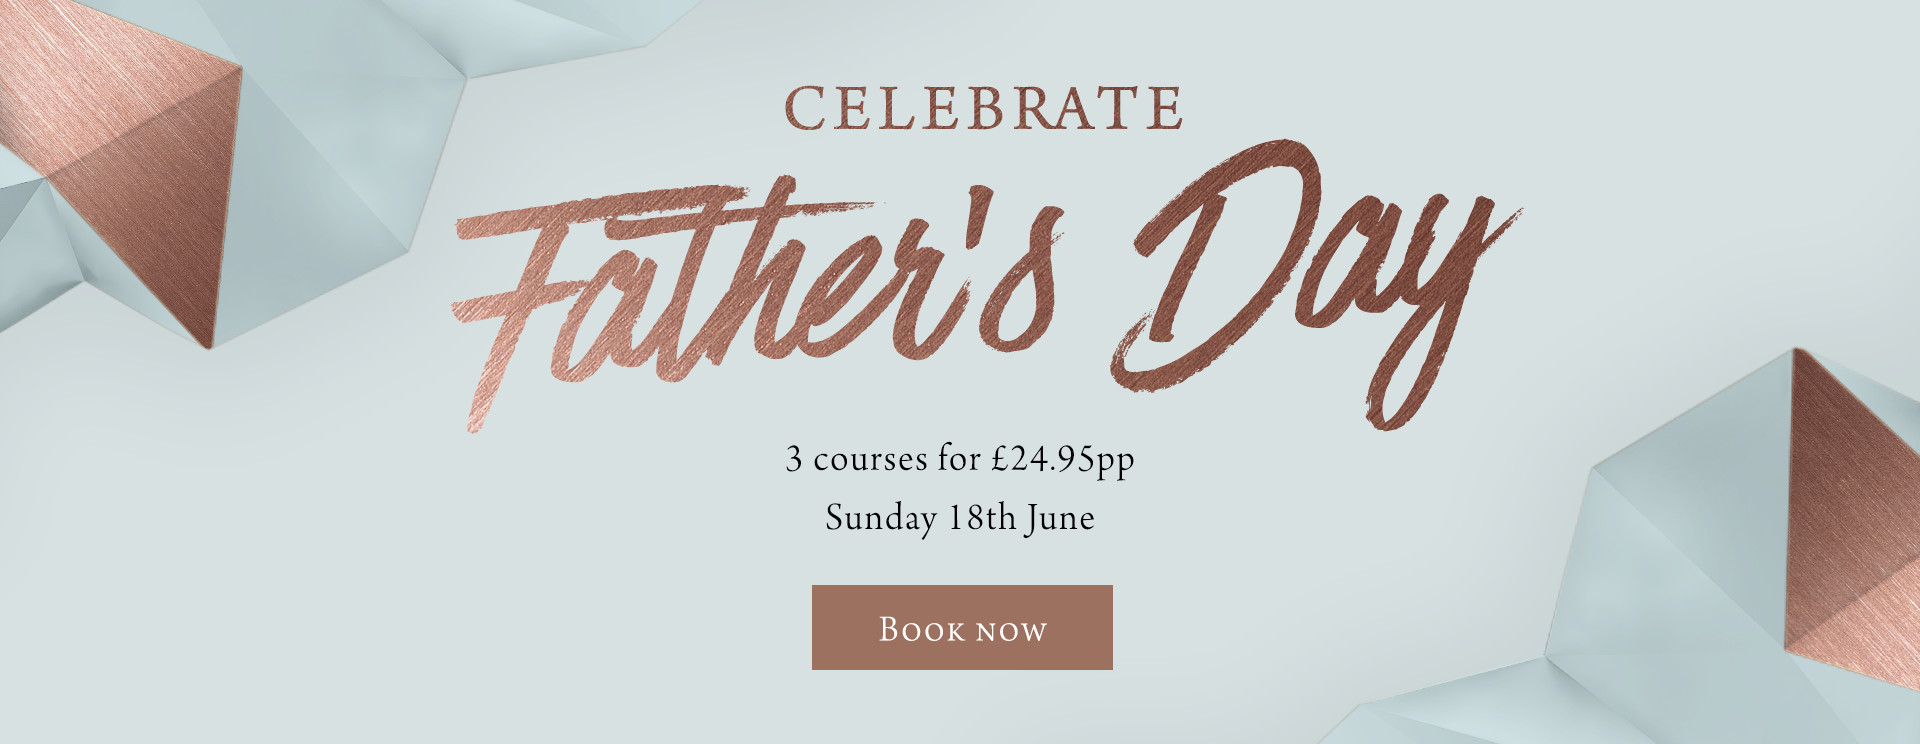 Father's Day at The Saxon Mill - Book now